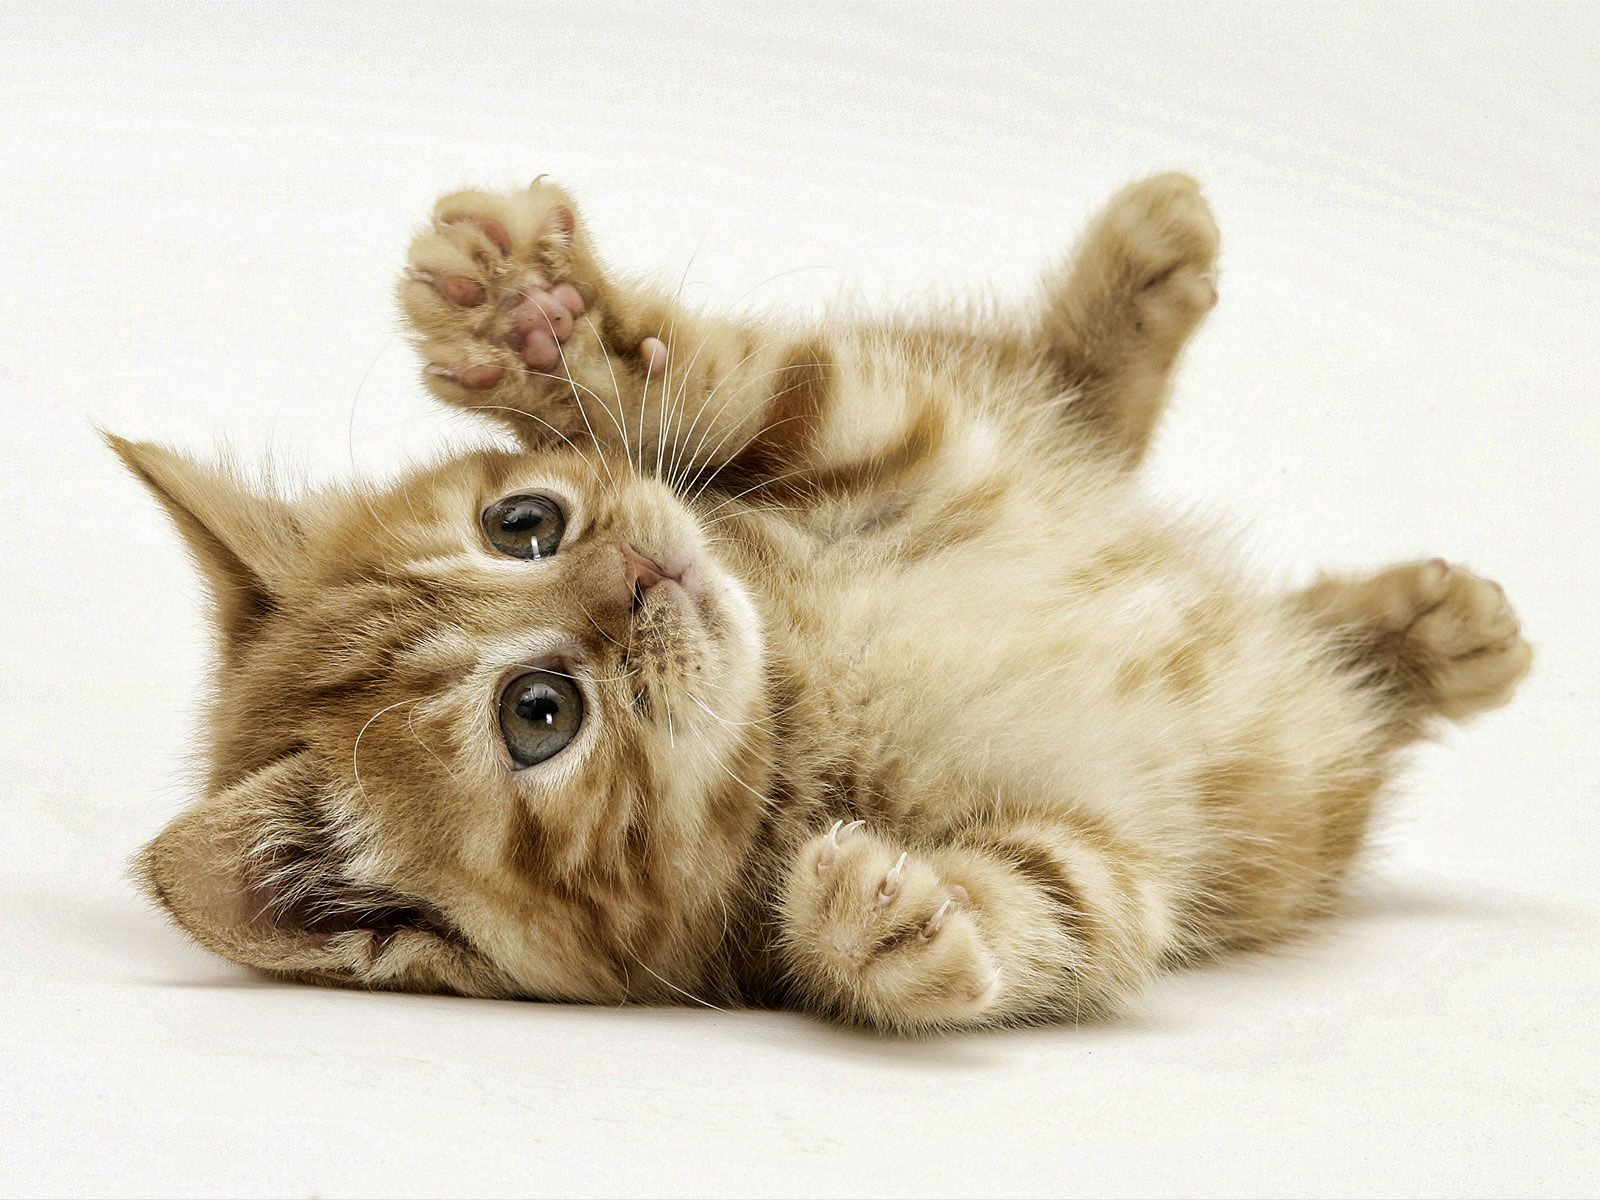 Pin By Emily Fields On Cicak Cats Kittens Cutest Cute Animals Kittens And Puppies